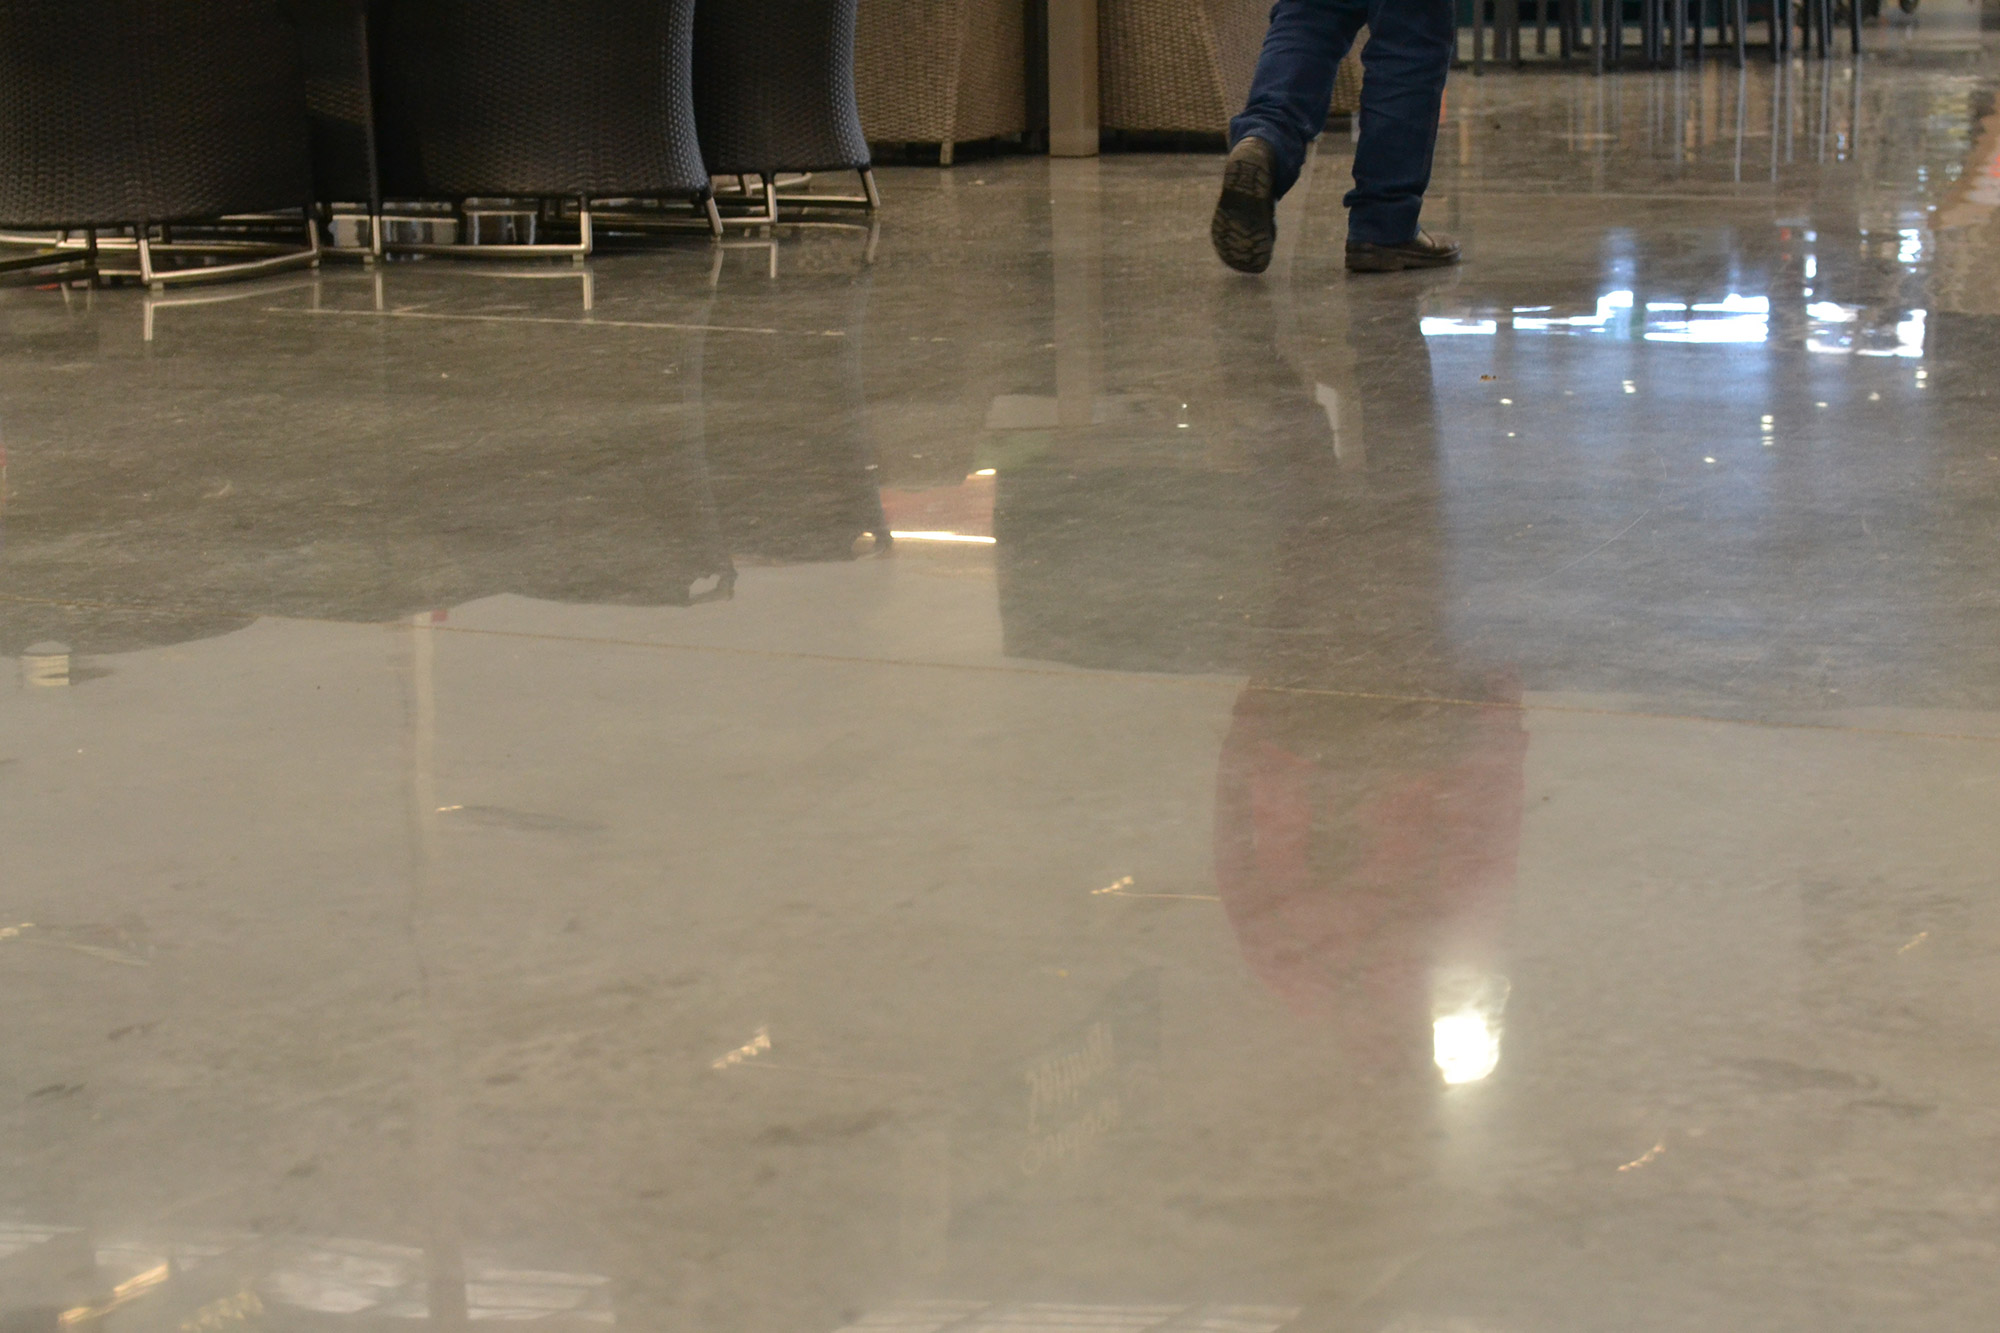 One Dependable Source. One Complete System. - At Green Concrete Products, we have only the best concrete flooring materials to ensure that your project is unsurpassed in quality and performance.We deliver quality and value for your floor with the ability to provide One Complete System on your project.